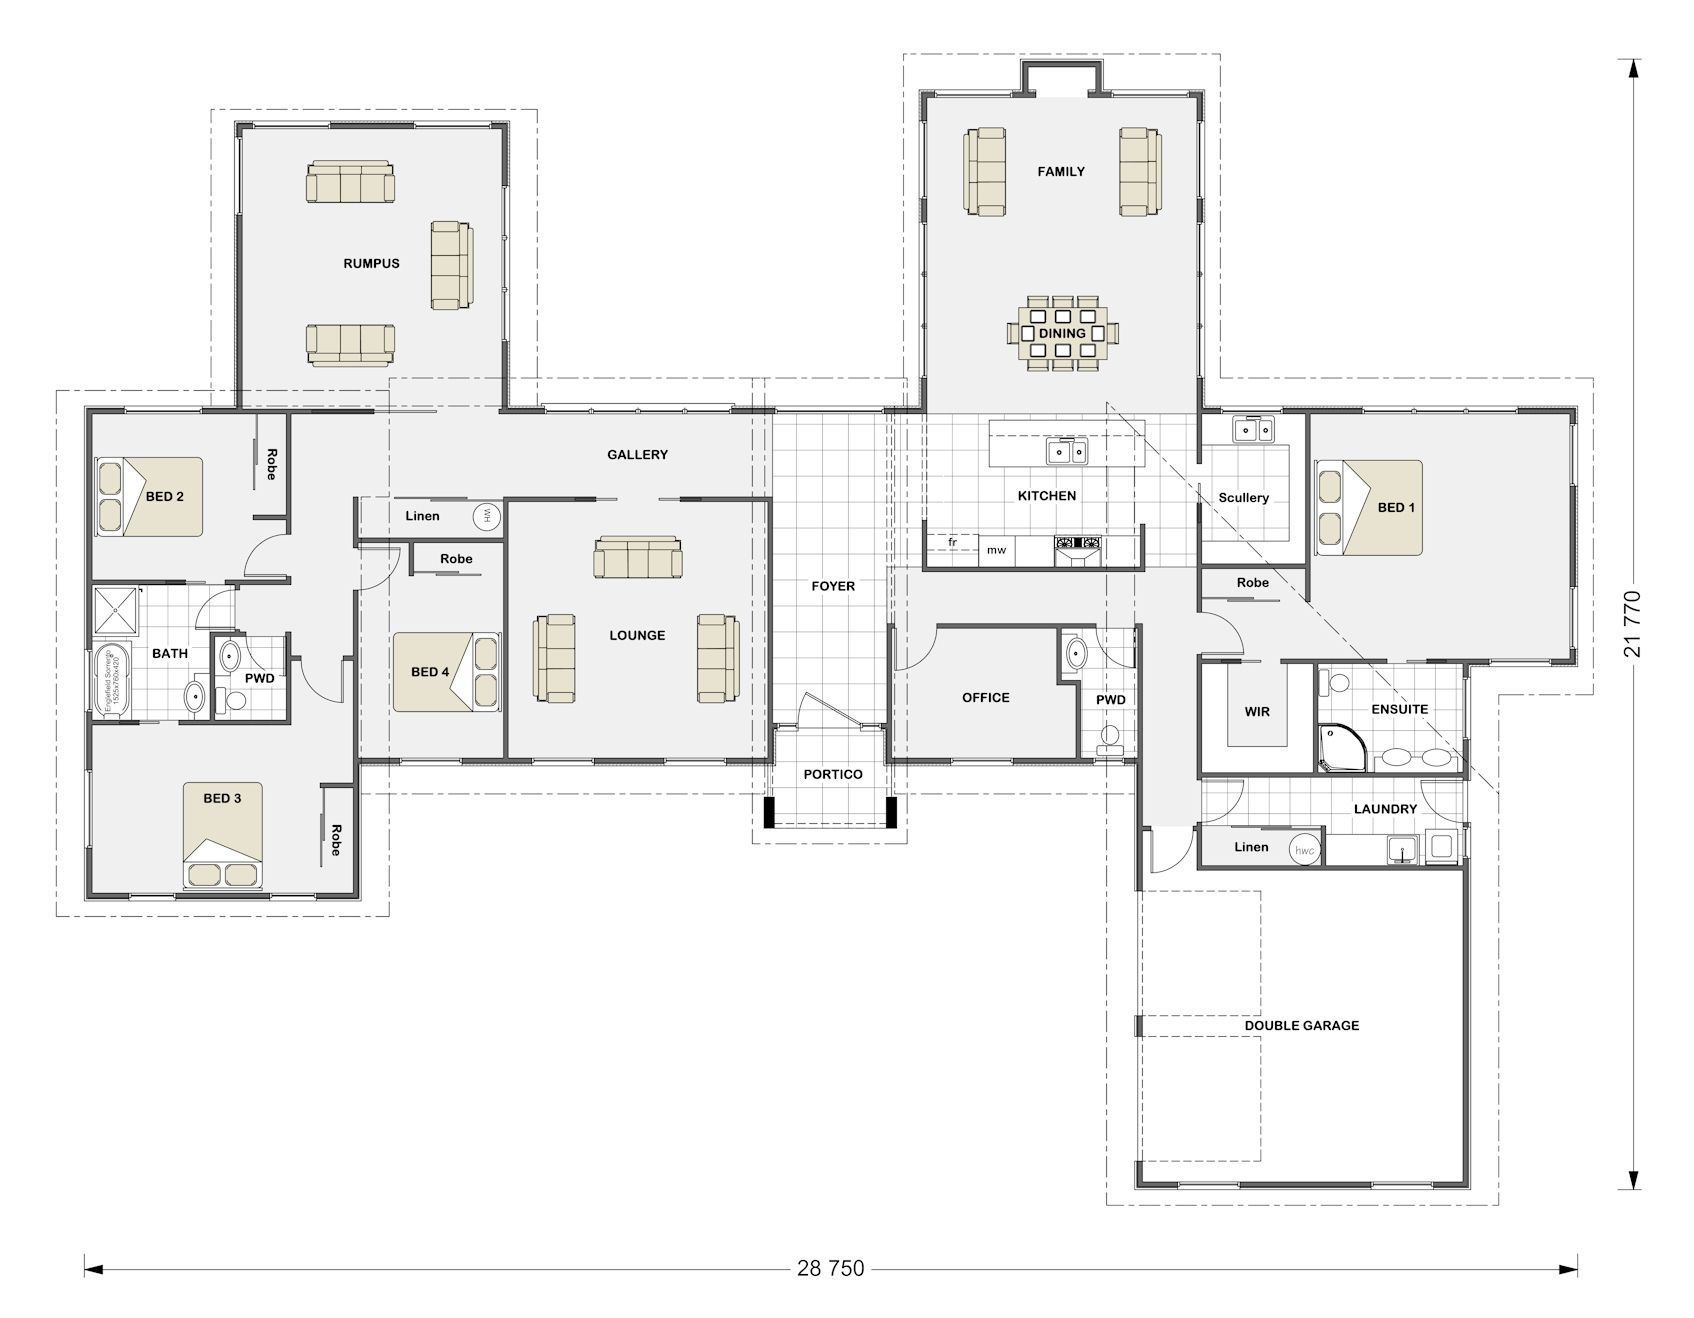 House designs floor plans new zealand house plans and for Modern house designs nz